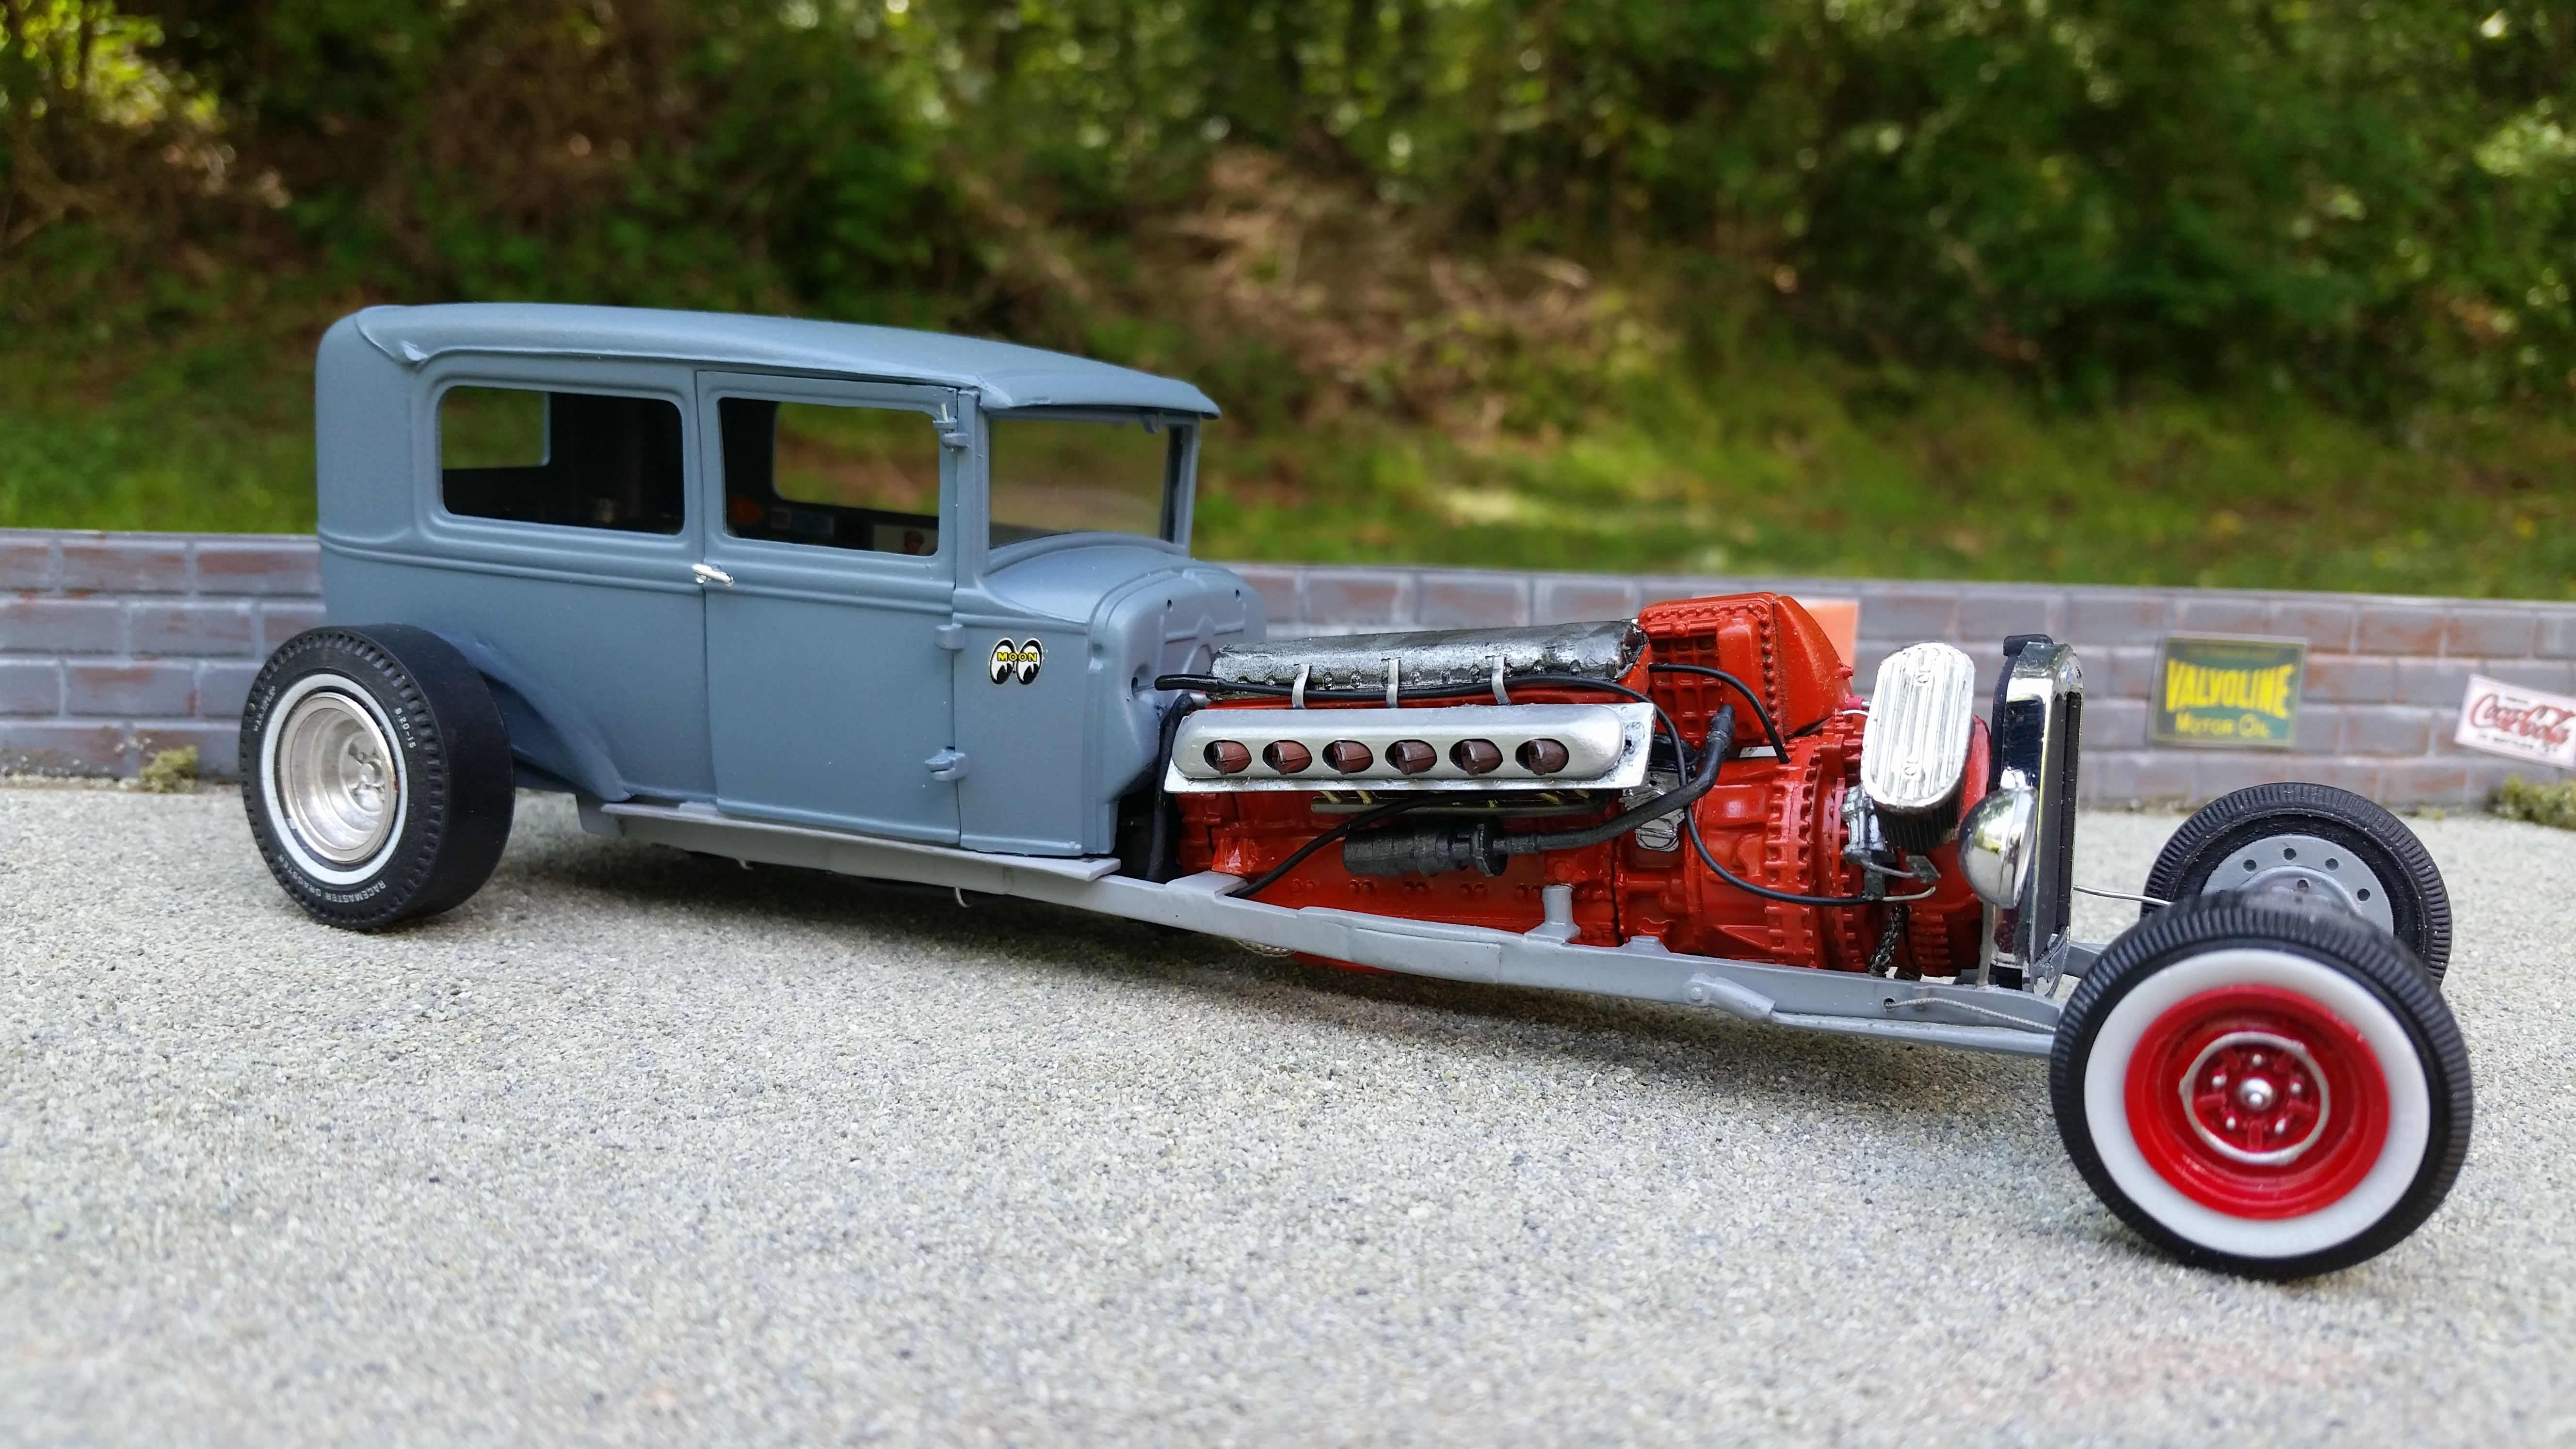 V12 packard engine from a p51 mustang model cars plastic model